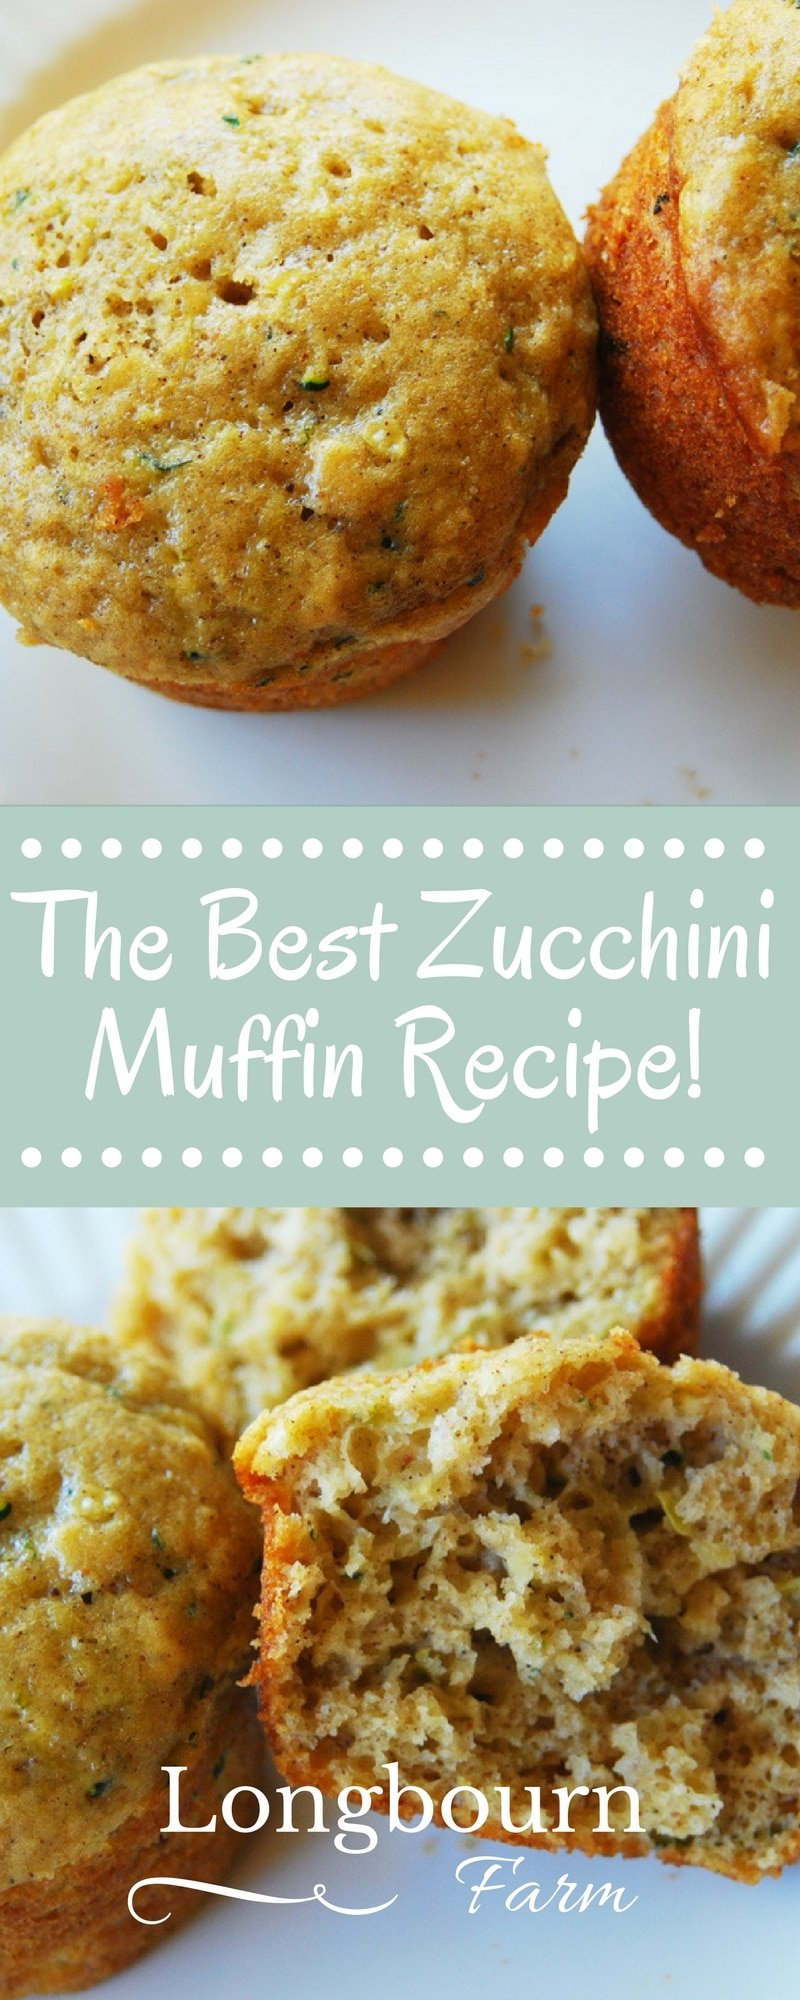 These are the best zucchini bread muffins! They are light and airy, not dense and greasy. This recipe will turn out every time you make it! via @longbournfarm